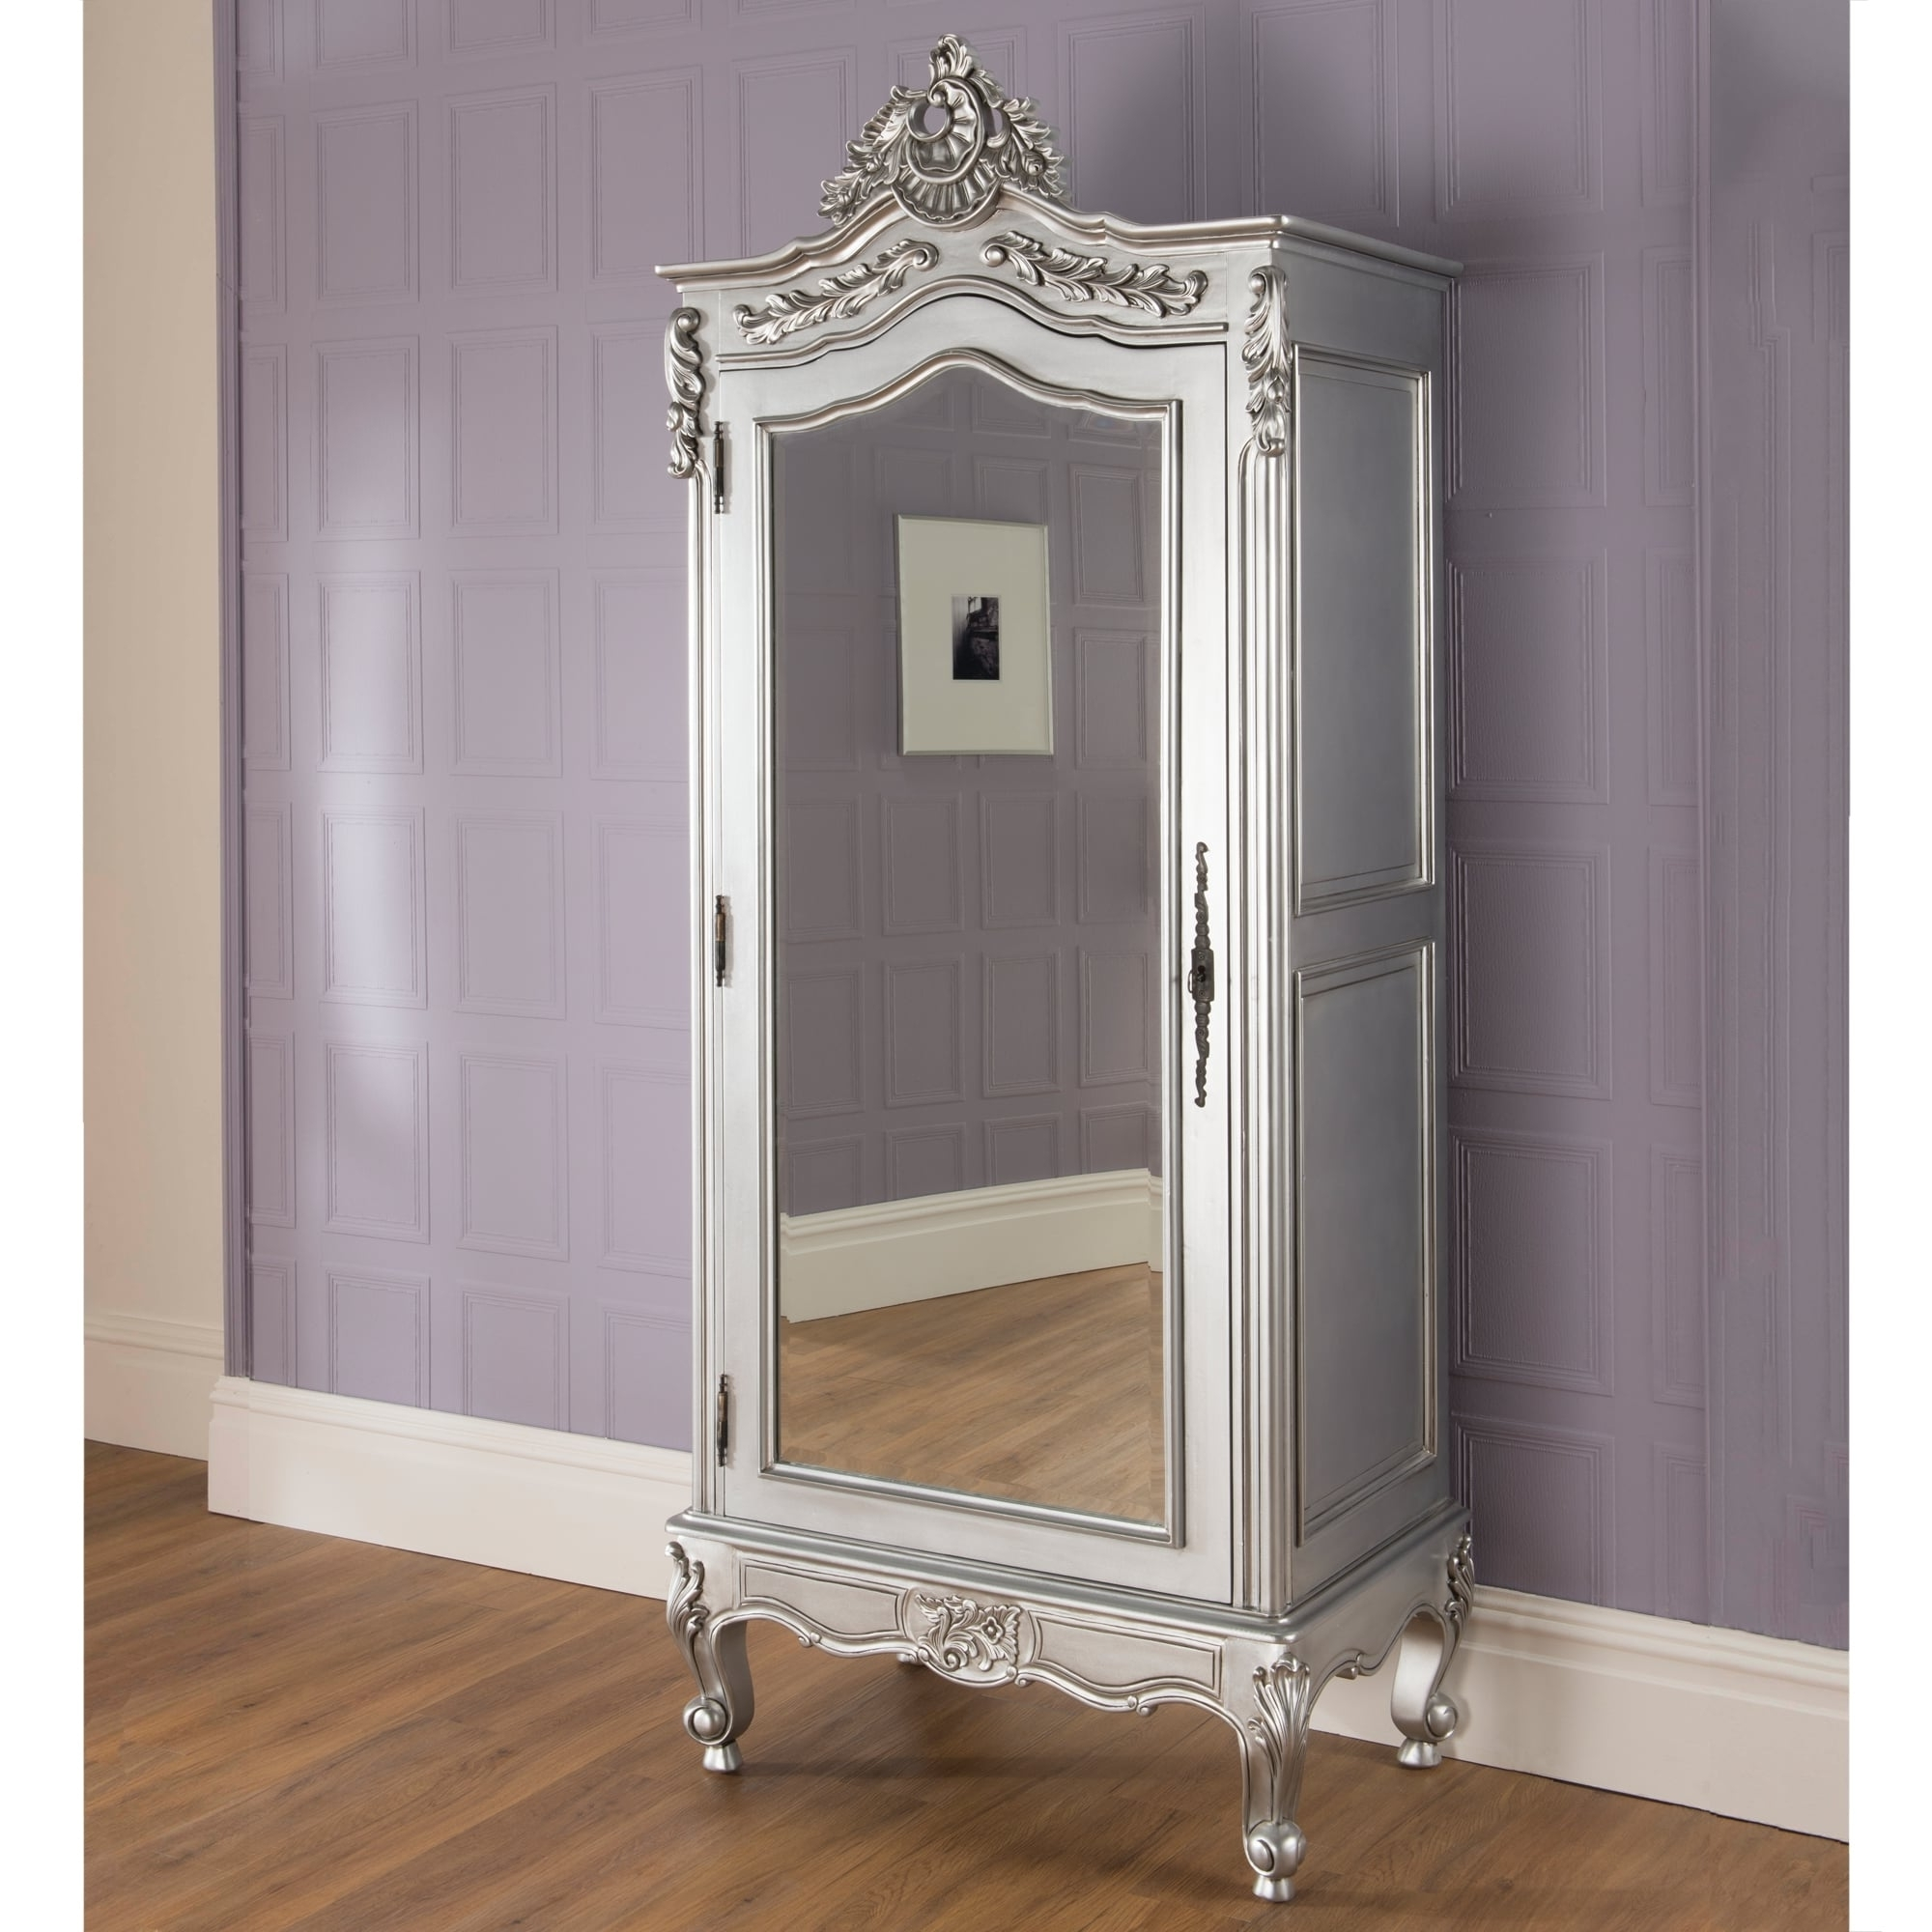 La Rochelle Antique French Wardrobe Is A Fantastic Addition To Our For Newest Silver Wardrobes (View 1 of 15)